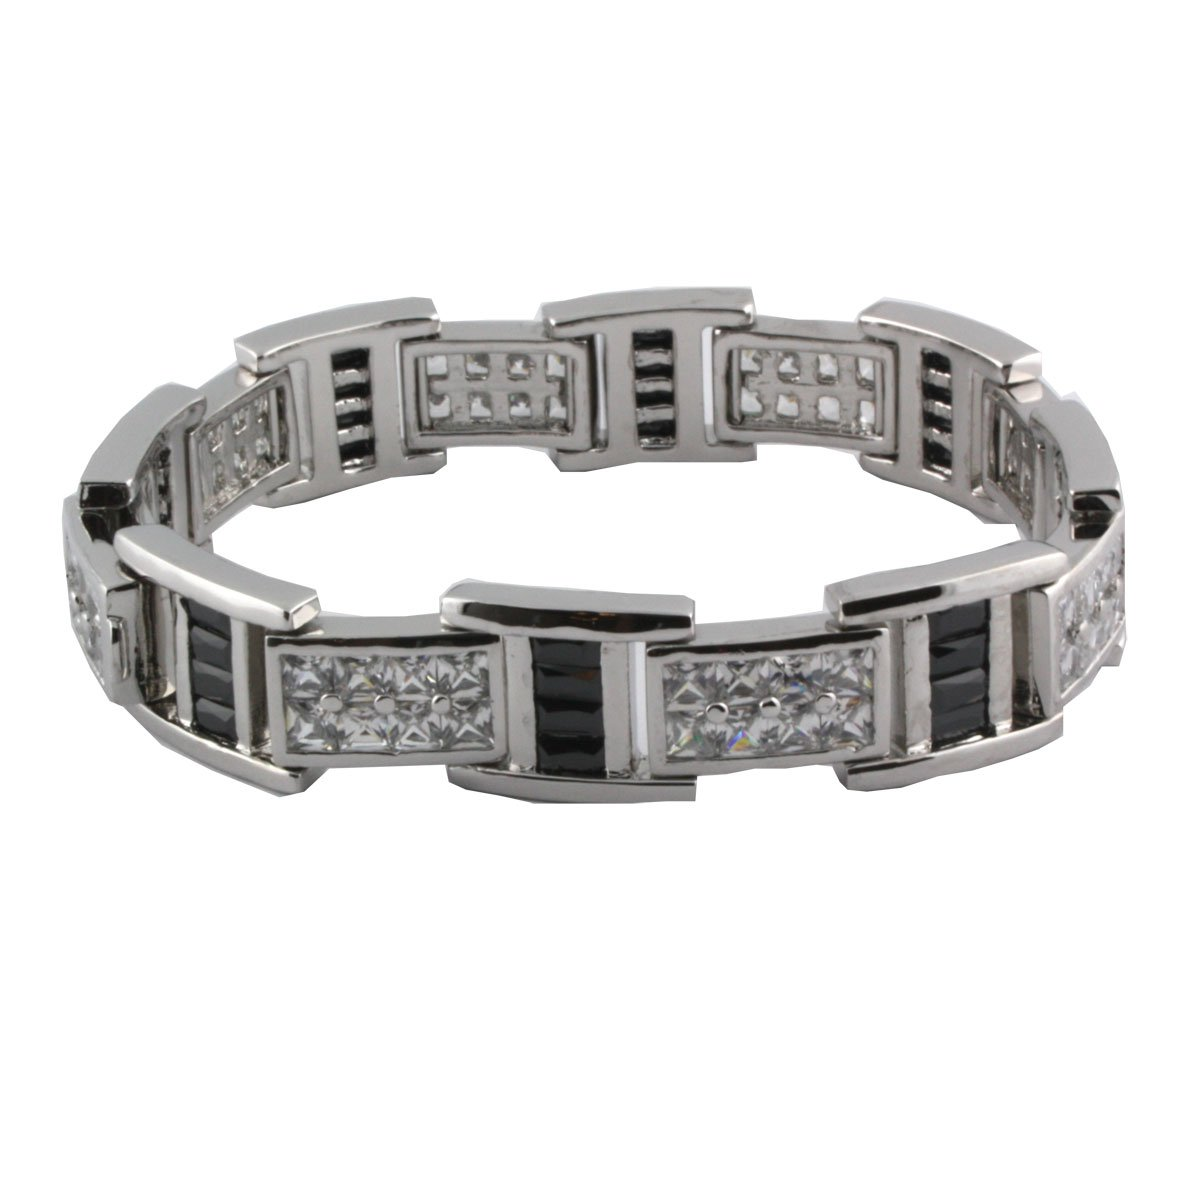 Sterling Silver 8 1/4 Inch Princess Cut Channel Set Bracelet